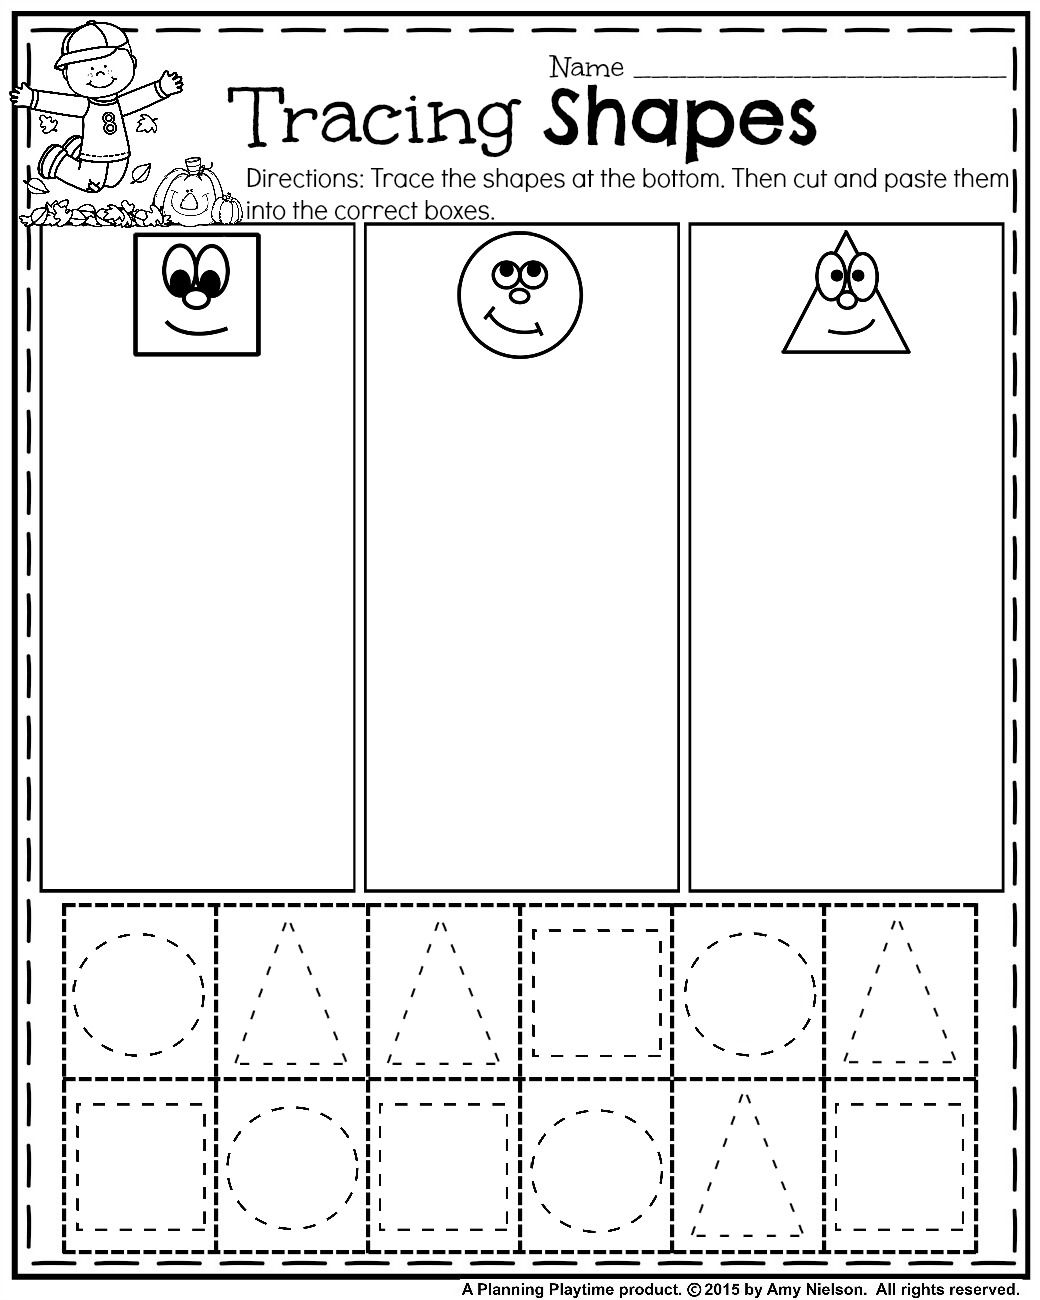 Worksheets Cut And Paste Worksheets For Pre K october preschool worksheets sheets pinterest fall tracing shapes cut paste and sort